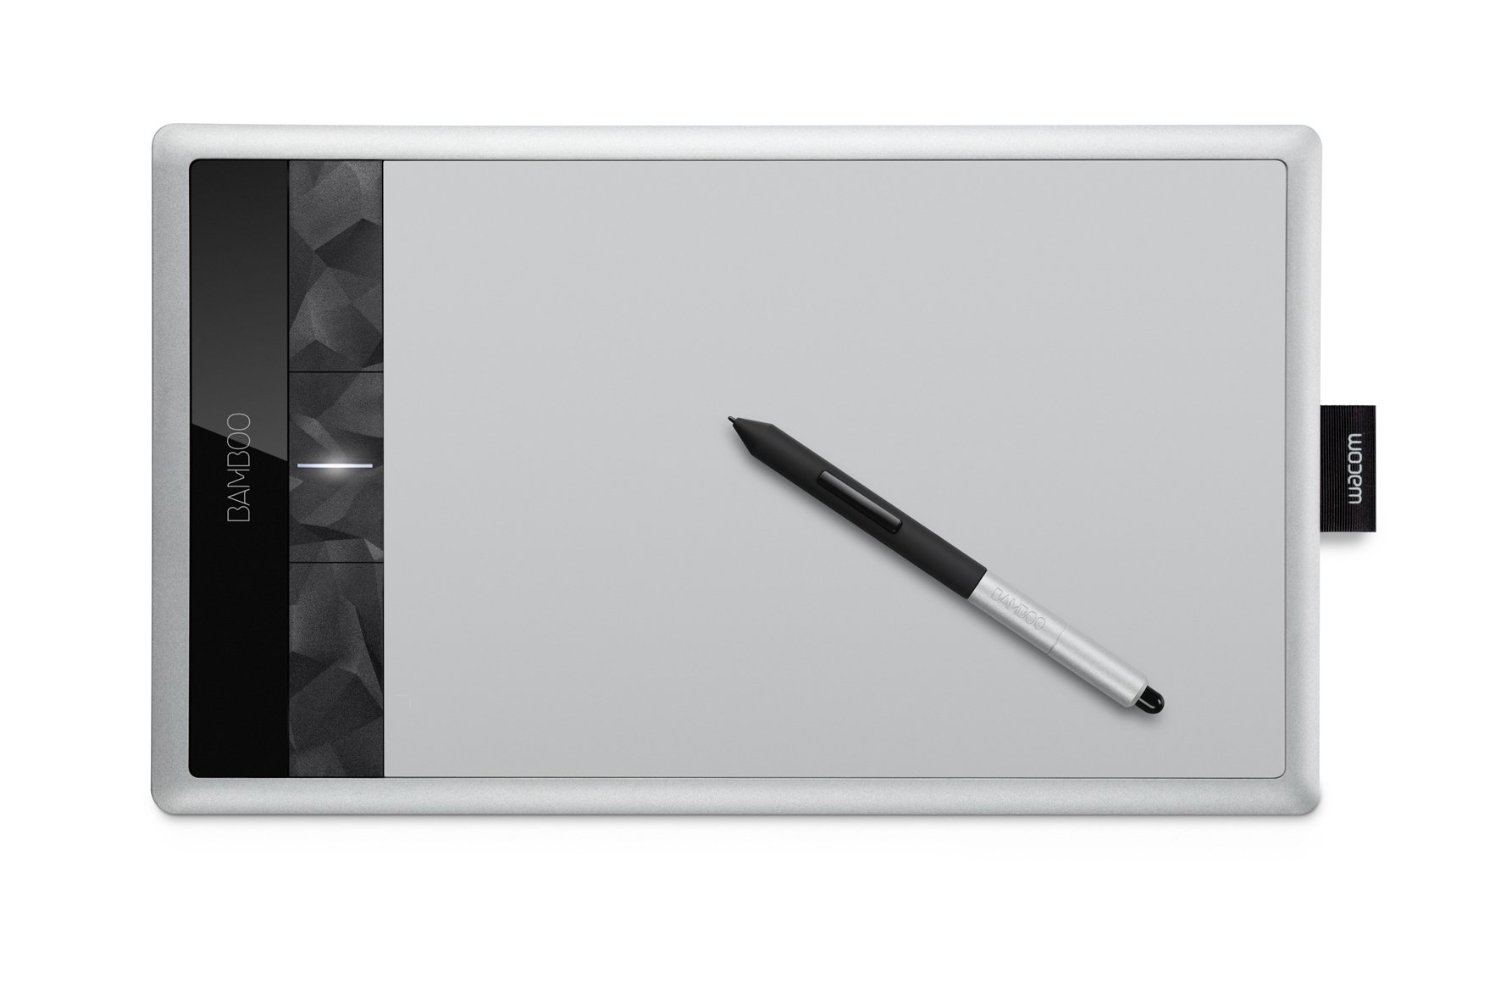 Wacom Bamboo CTH-670 Driver Download - Updates Drivers